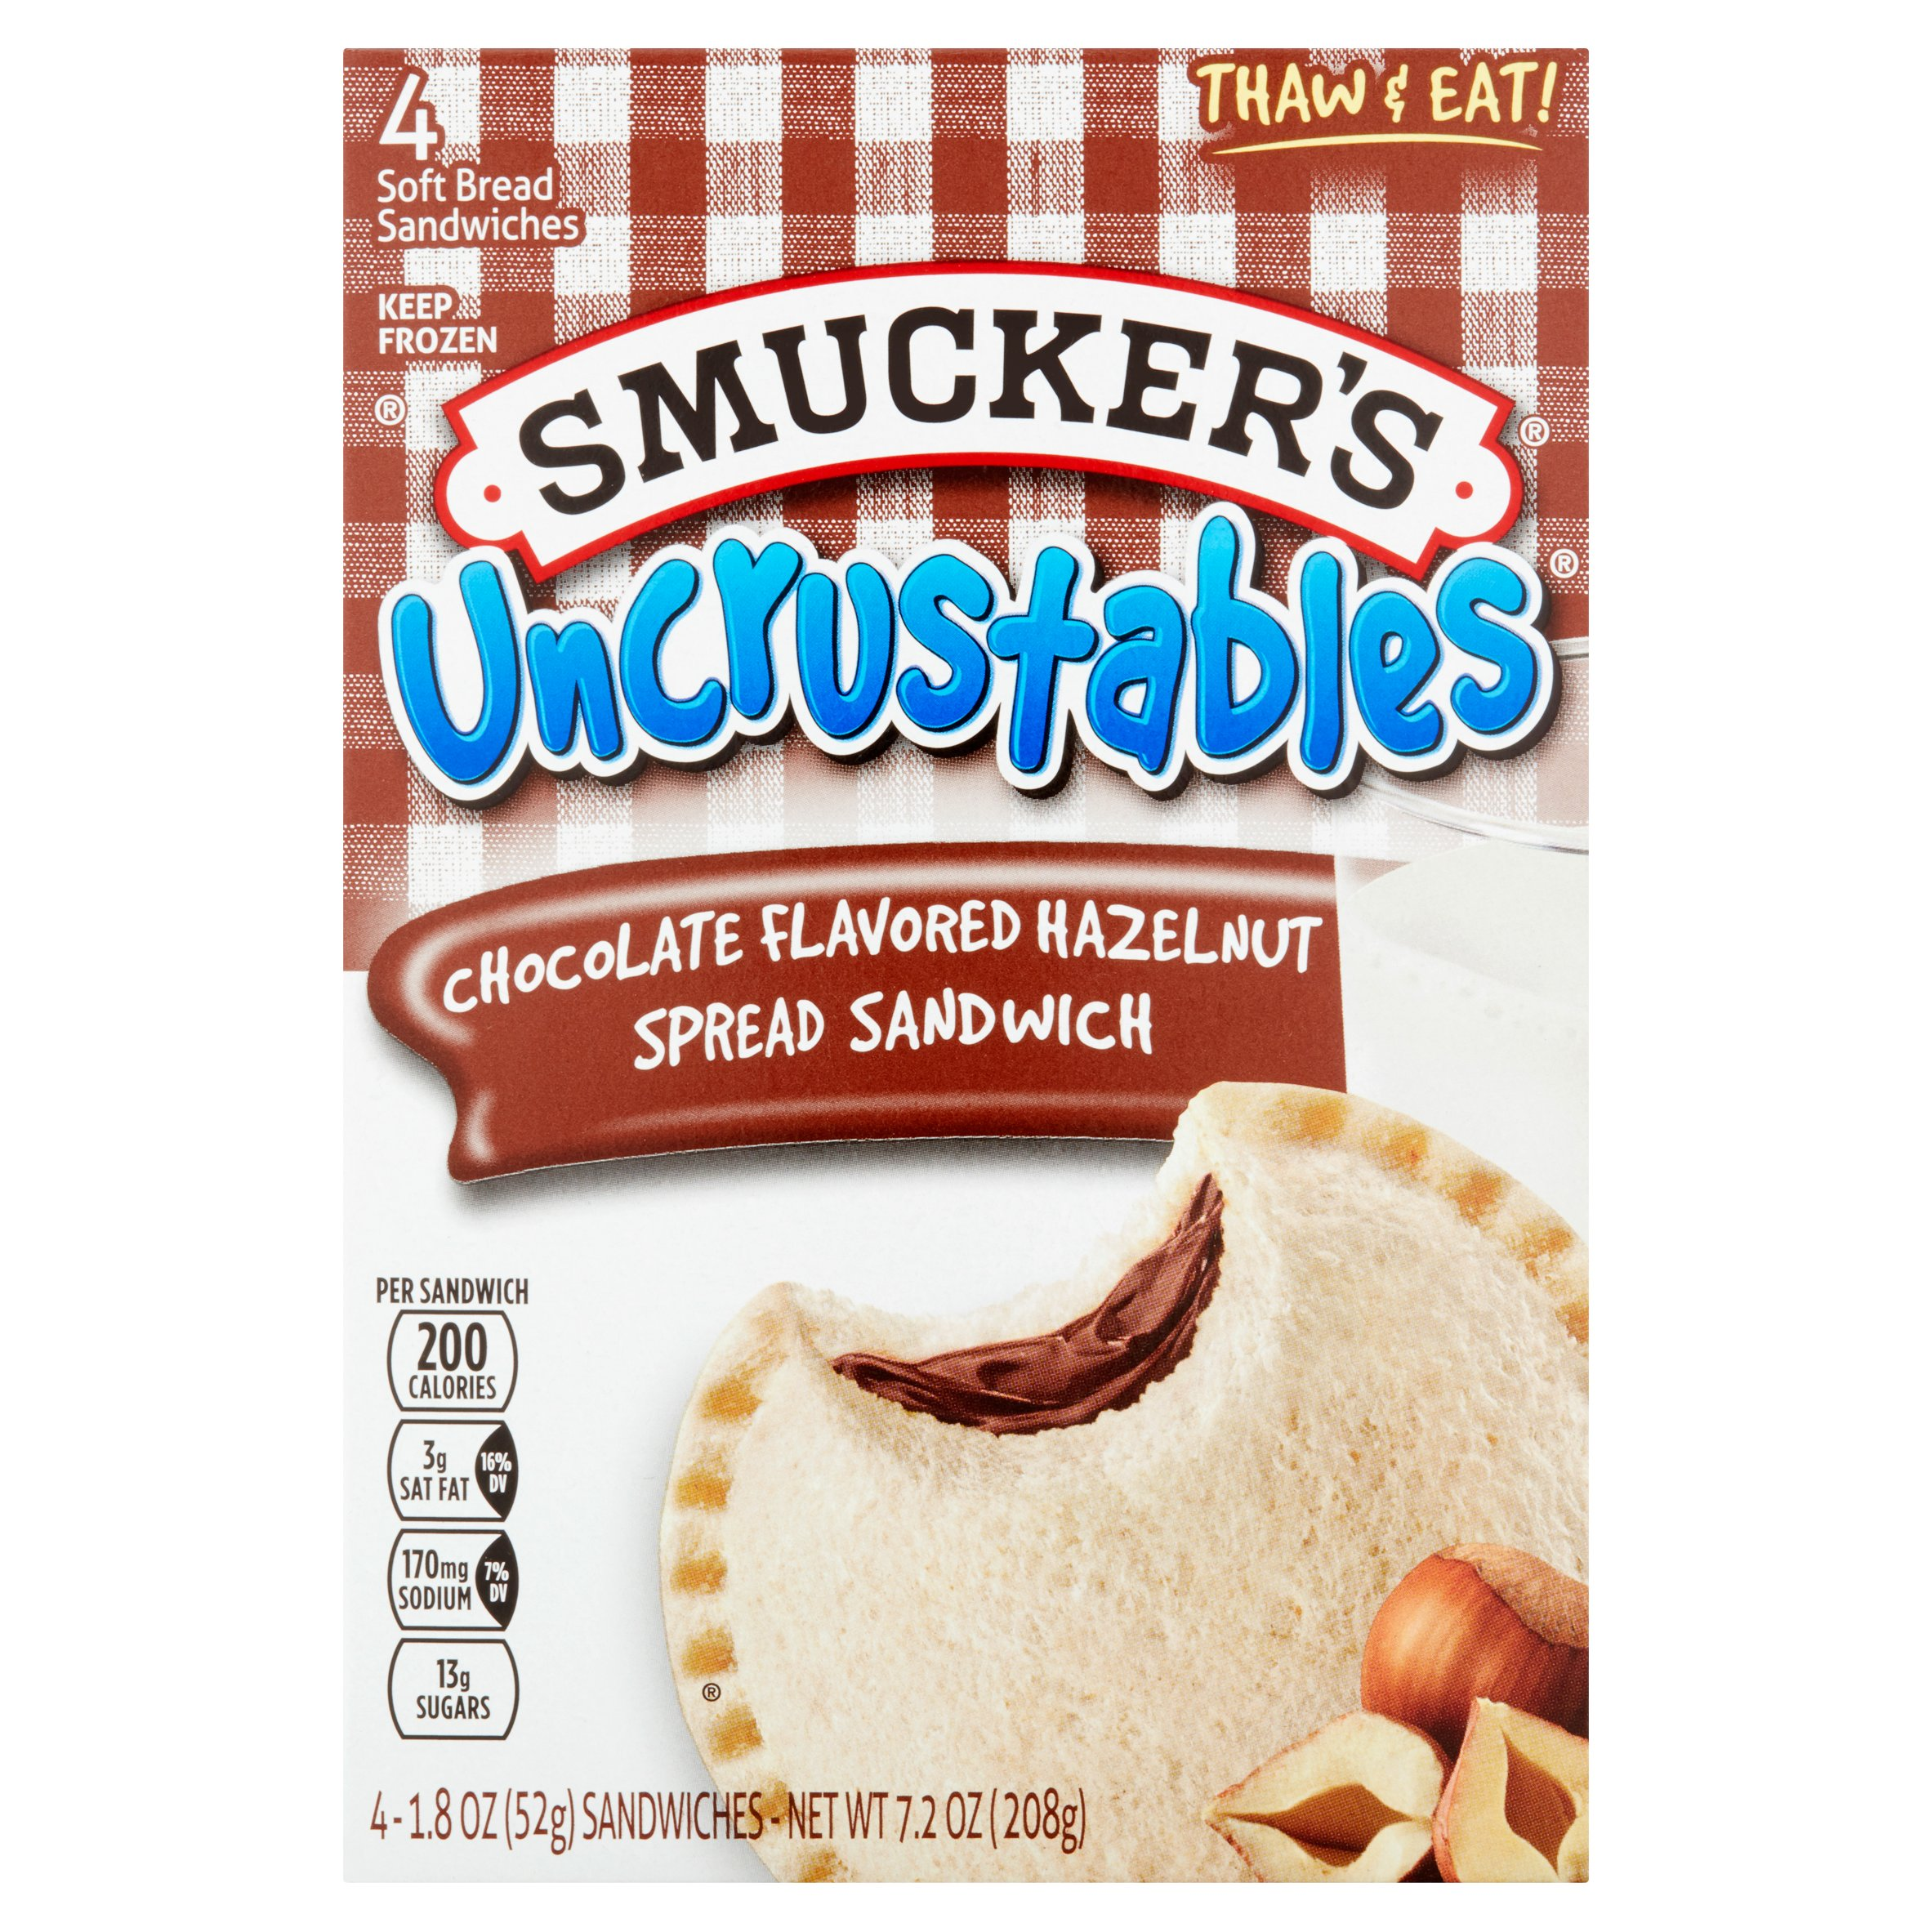 Smucker's Uncrustables Chocolate Flavored Hazelnut Spread Sandwich, 1.8 oz, 4 count